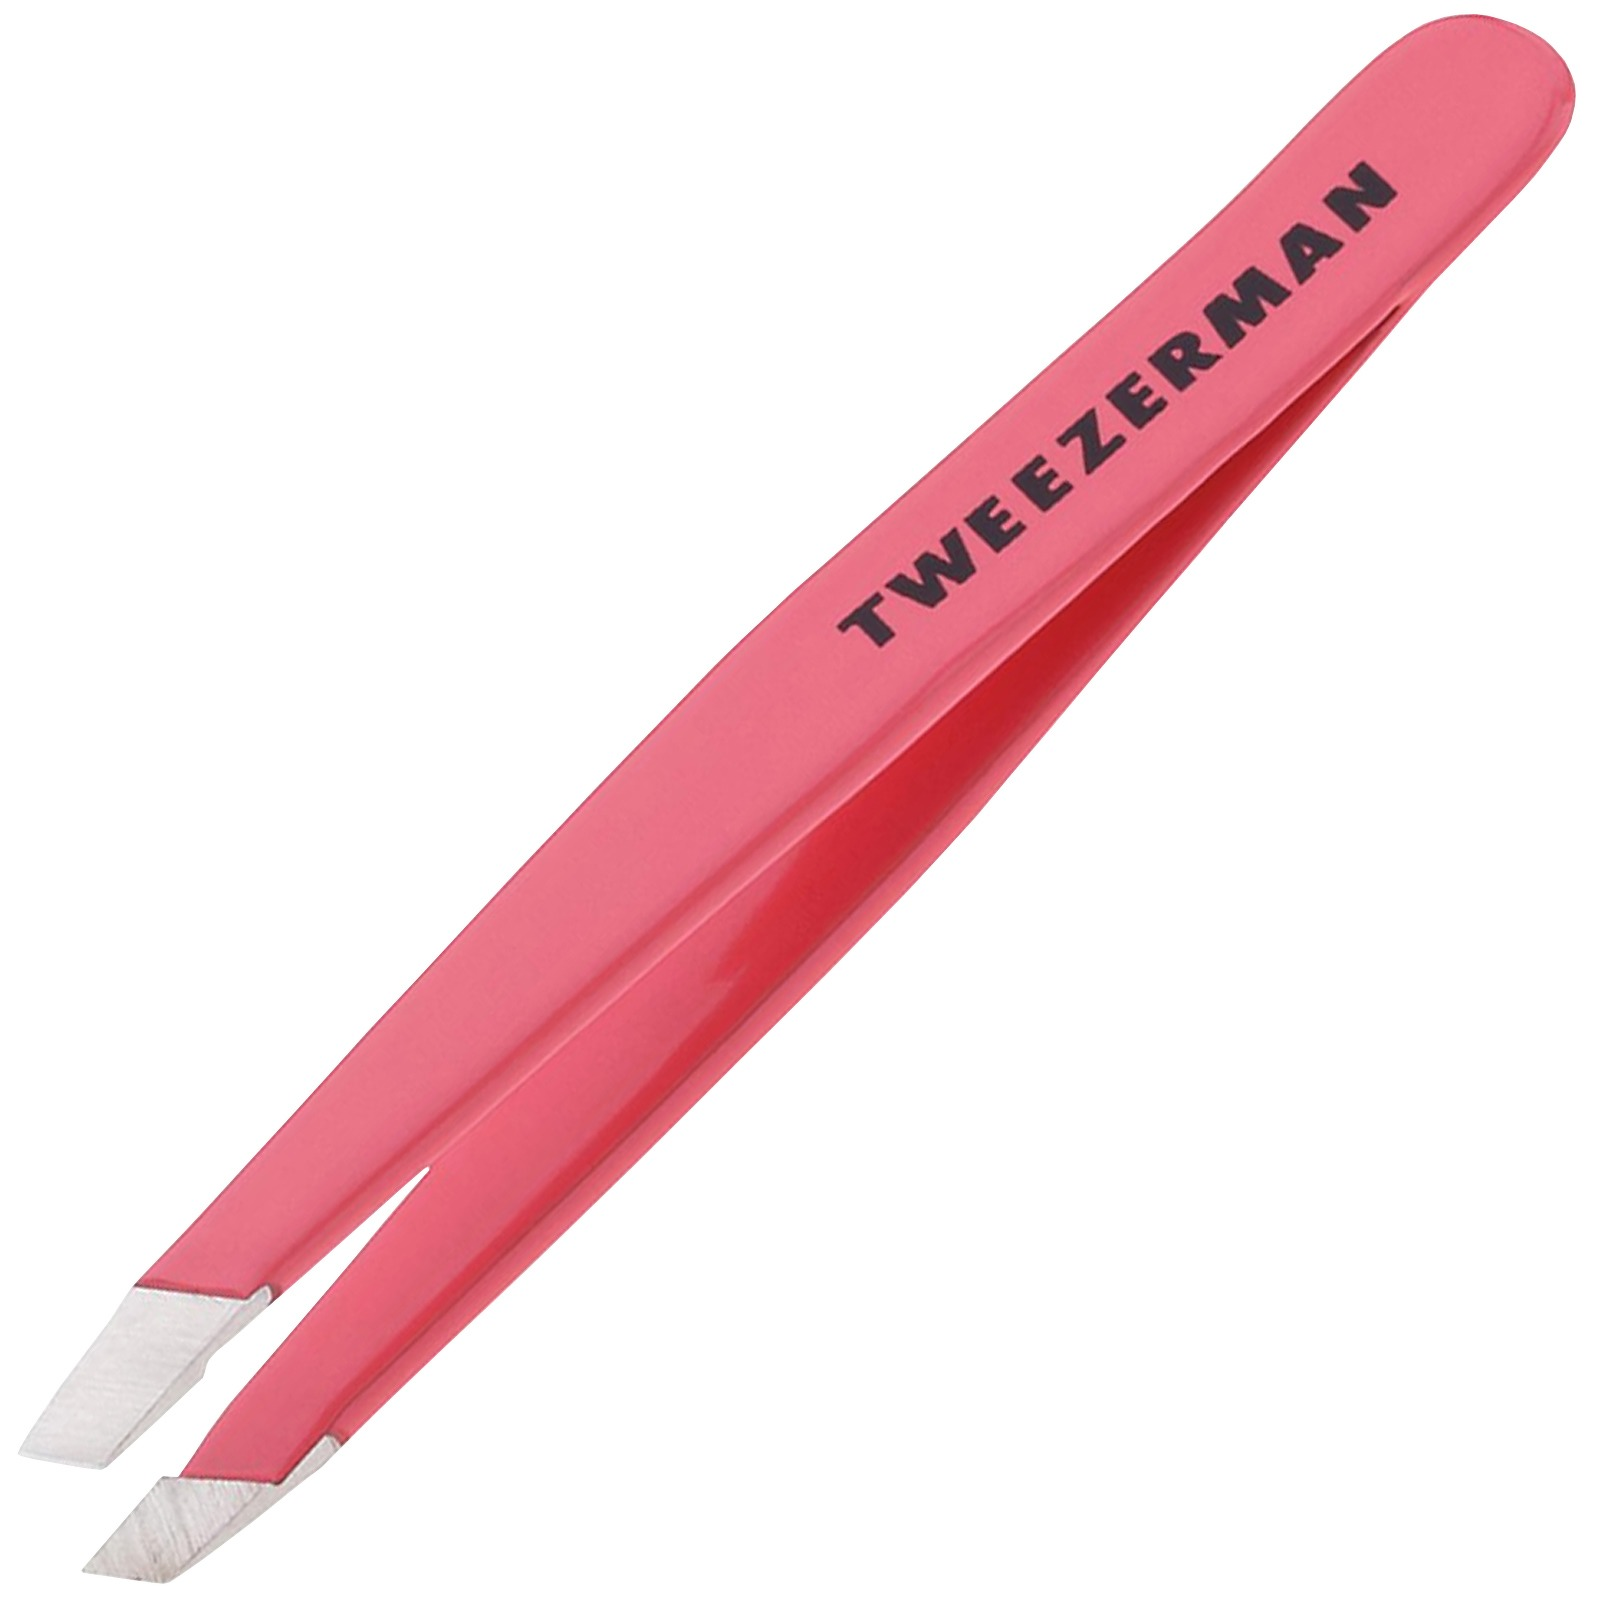 Tweezerman Brows Slant Tweezer Geranium